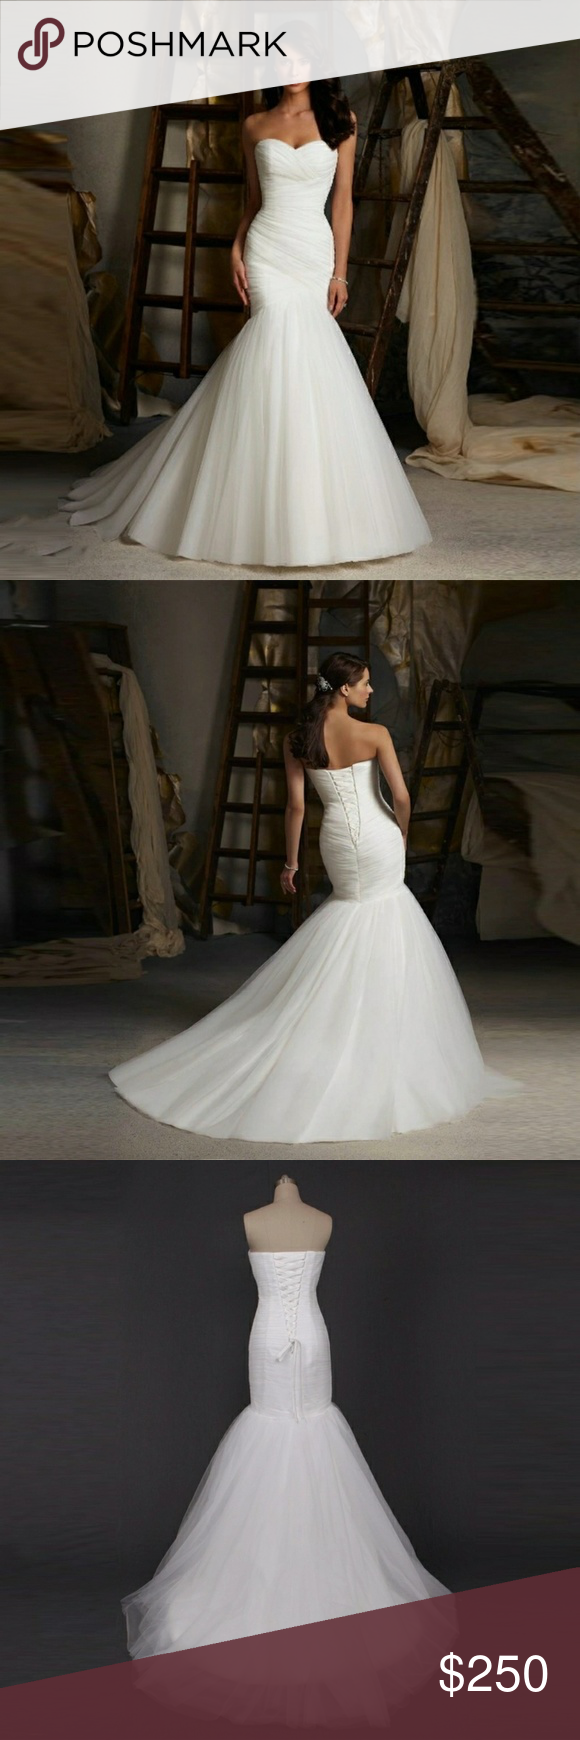 Trumpet Mermiad Bridal Gown Wedding Dress Stunning and elegant trumpet skirt bridal gown Available in sizes 2-16 PLEASE see size chart in the photos and measure with cm to get the correct size. If bust a hips say you're an 8 but waist says you're a 10 get the 10.  Available in White or ivory I own my own bridal boutique and these gowns are my house brand. Takes 7-10 days for me to get the gown with my shop order and ship to you.  This gown sells for $499 in my shop. Dresses Wedding